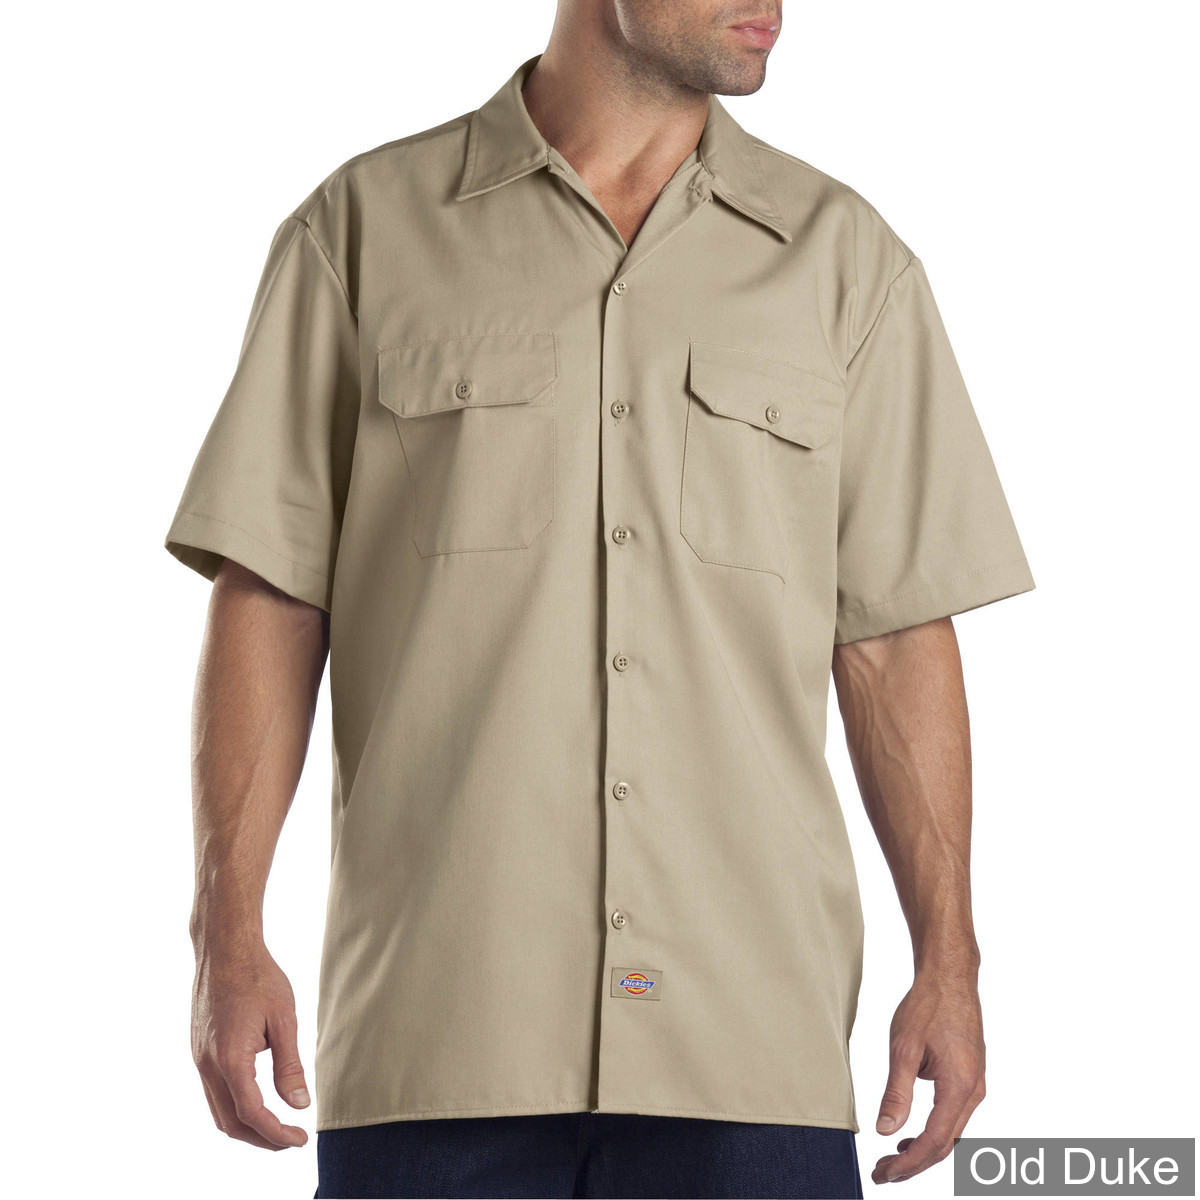 CHEMISE A MANCHES COURTE - DICKIES - SHORT SLEEVE WORK SHIRT #1574 - RELAXED FIT - COULEUR : KHAKI - TAILLE : XL